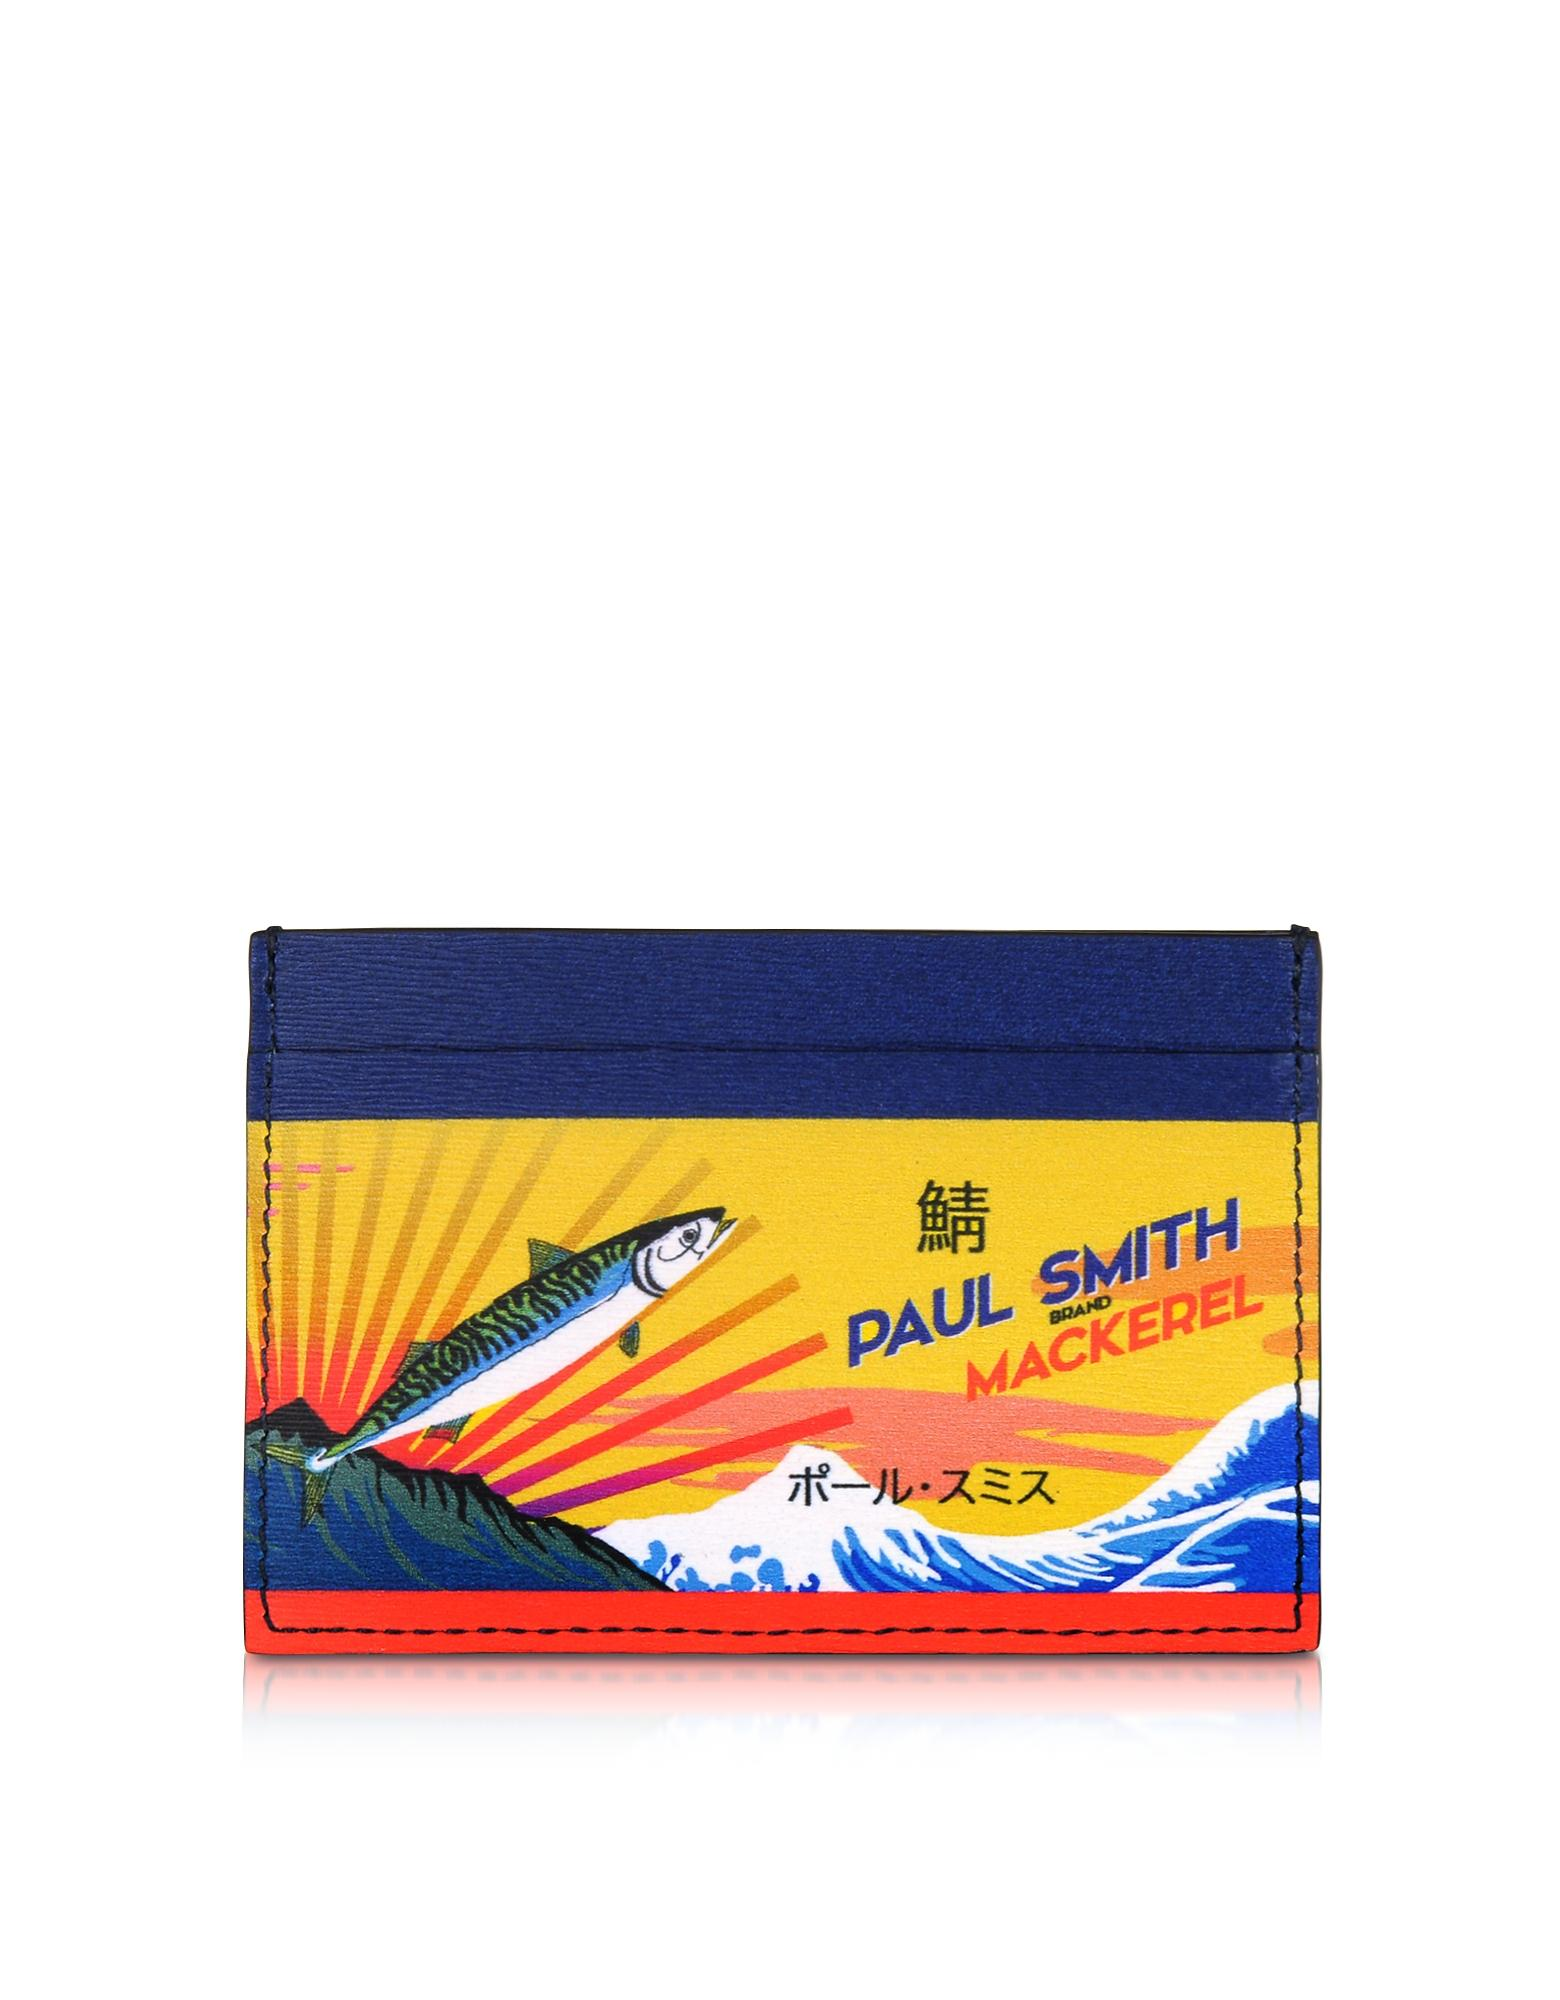 Paul Smith Mackerel Print Leather Credit Card Holder